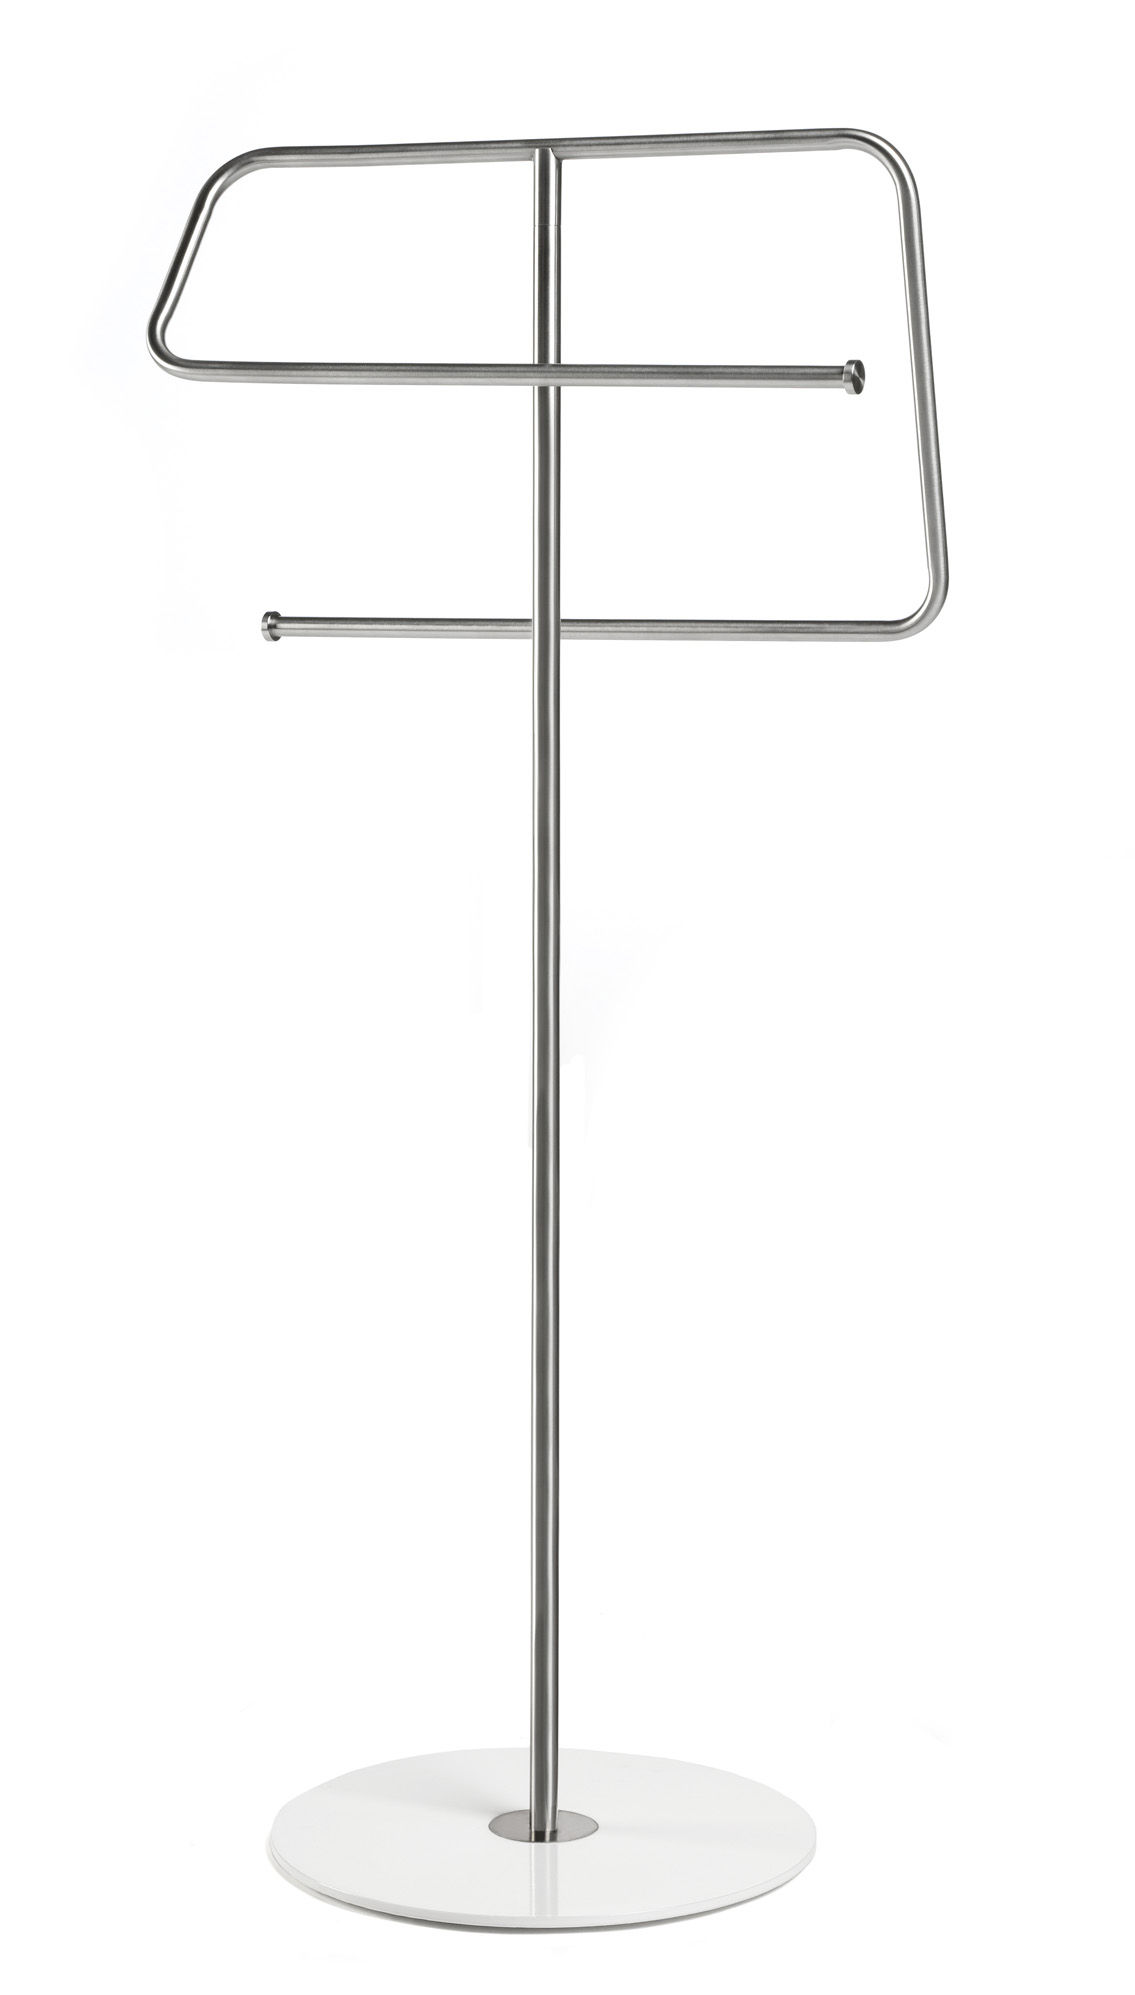 Decoration - For bathroom - Kali Towel rail - Towel stand by Authentics - Stainless steel - White base - Stainless steel